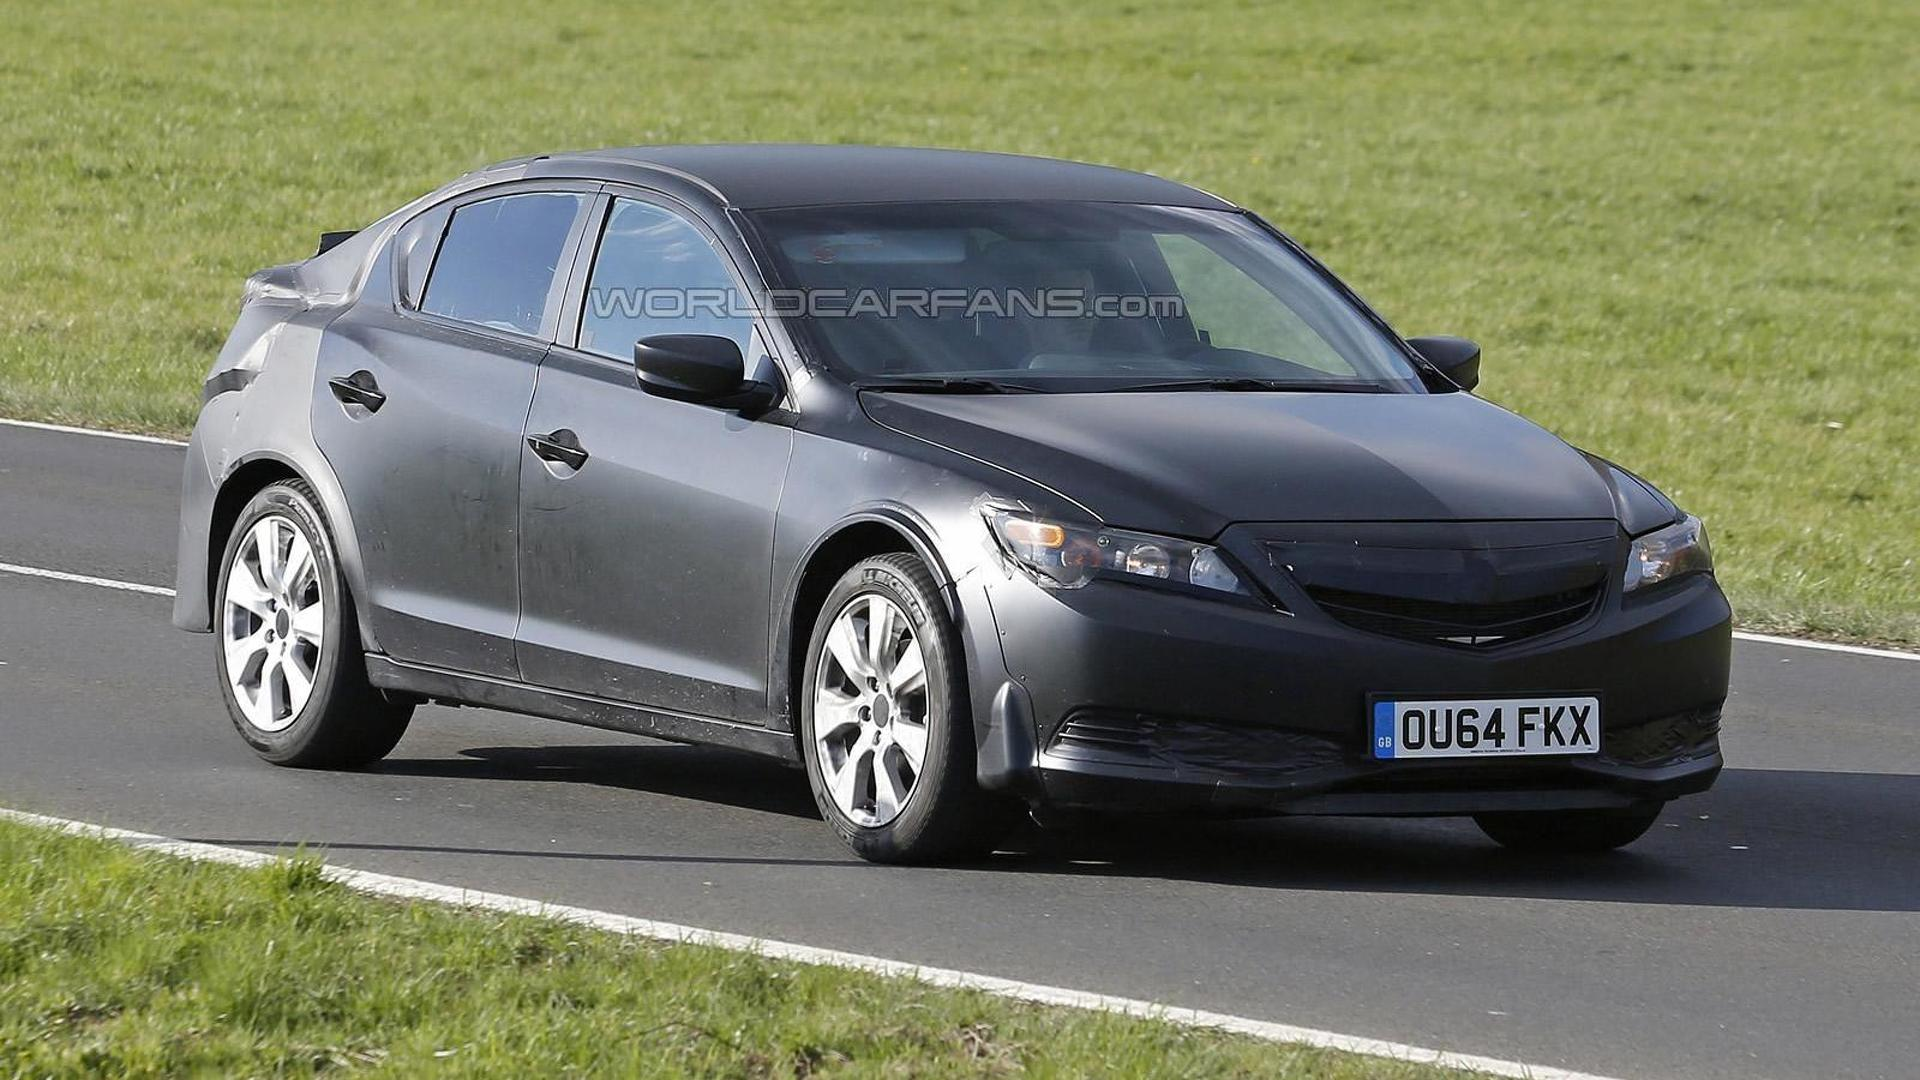 Next generation Honda Civic test mule spied in Germany